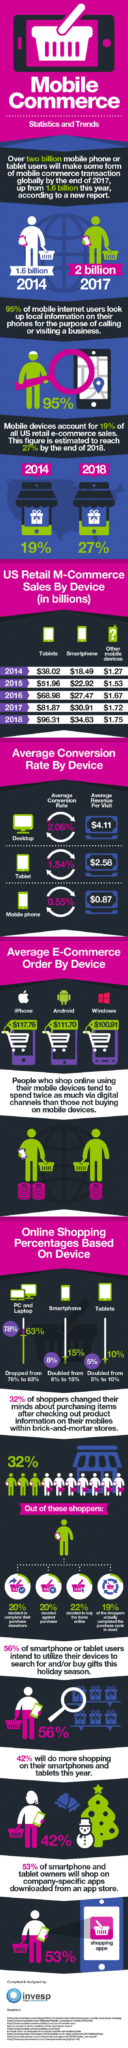 The State of Mobile Commerce [Infographic]